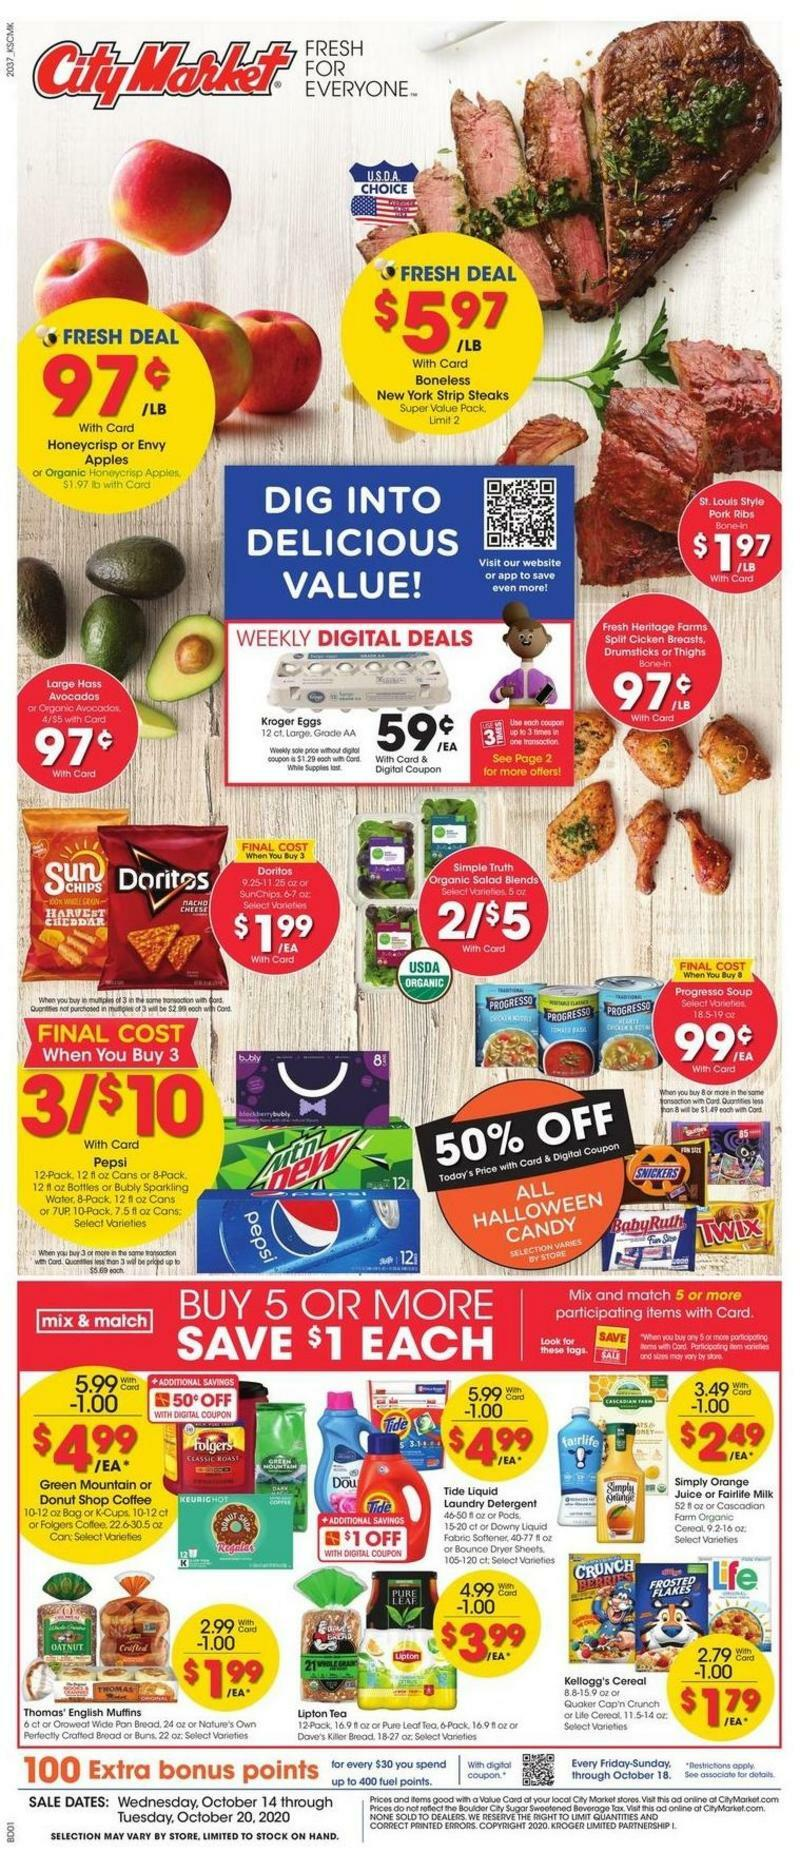 City Market Weekly Ad from October 14